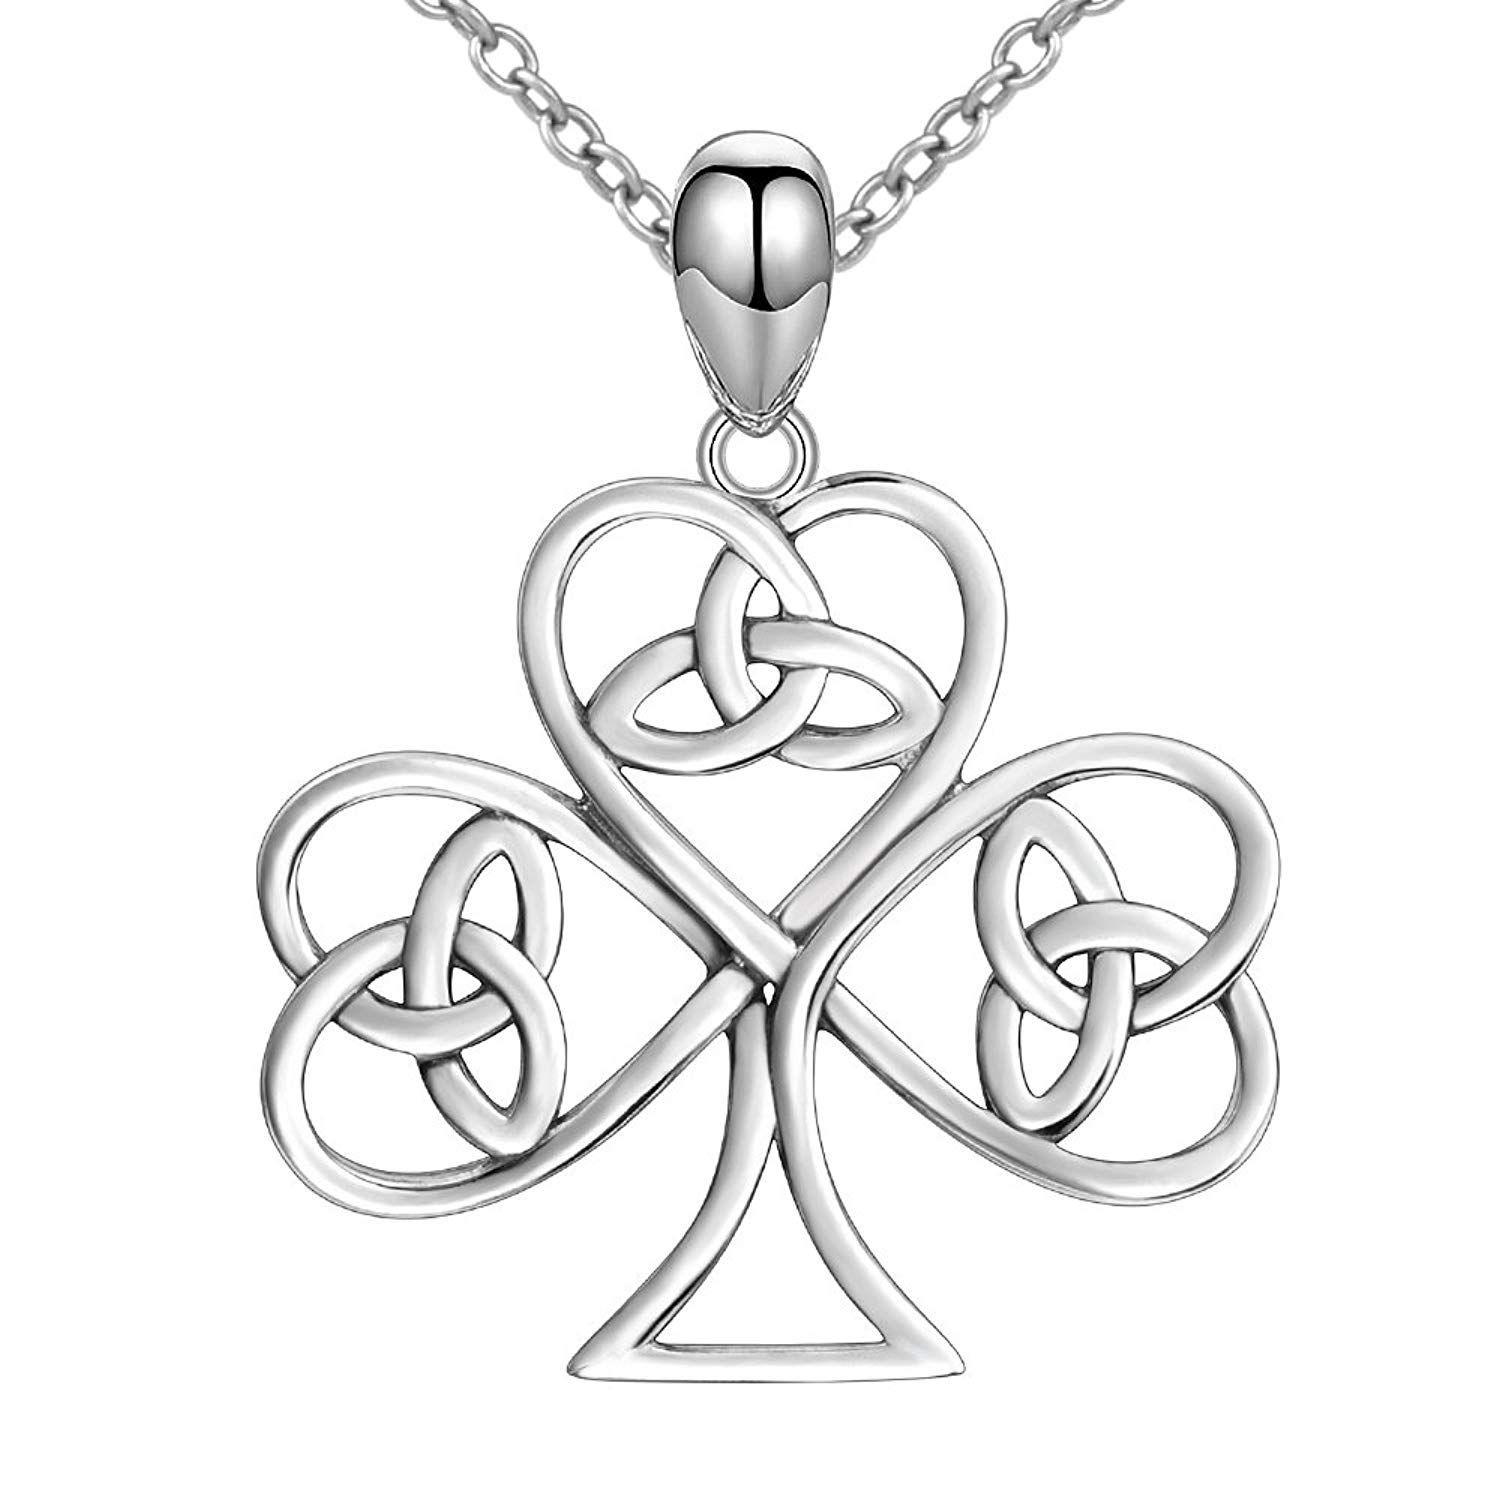 Strollgirl 925 Real Sterling Silver Charm Tree Of Life Celtic Knot With Regard To Best And Newest Knotted Heart Pendant Necklaces (Gallery 14 of 25)